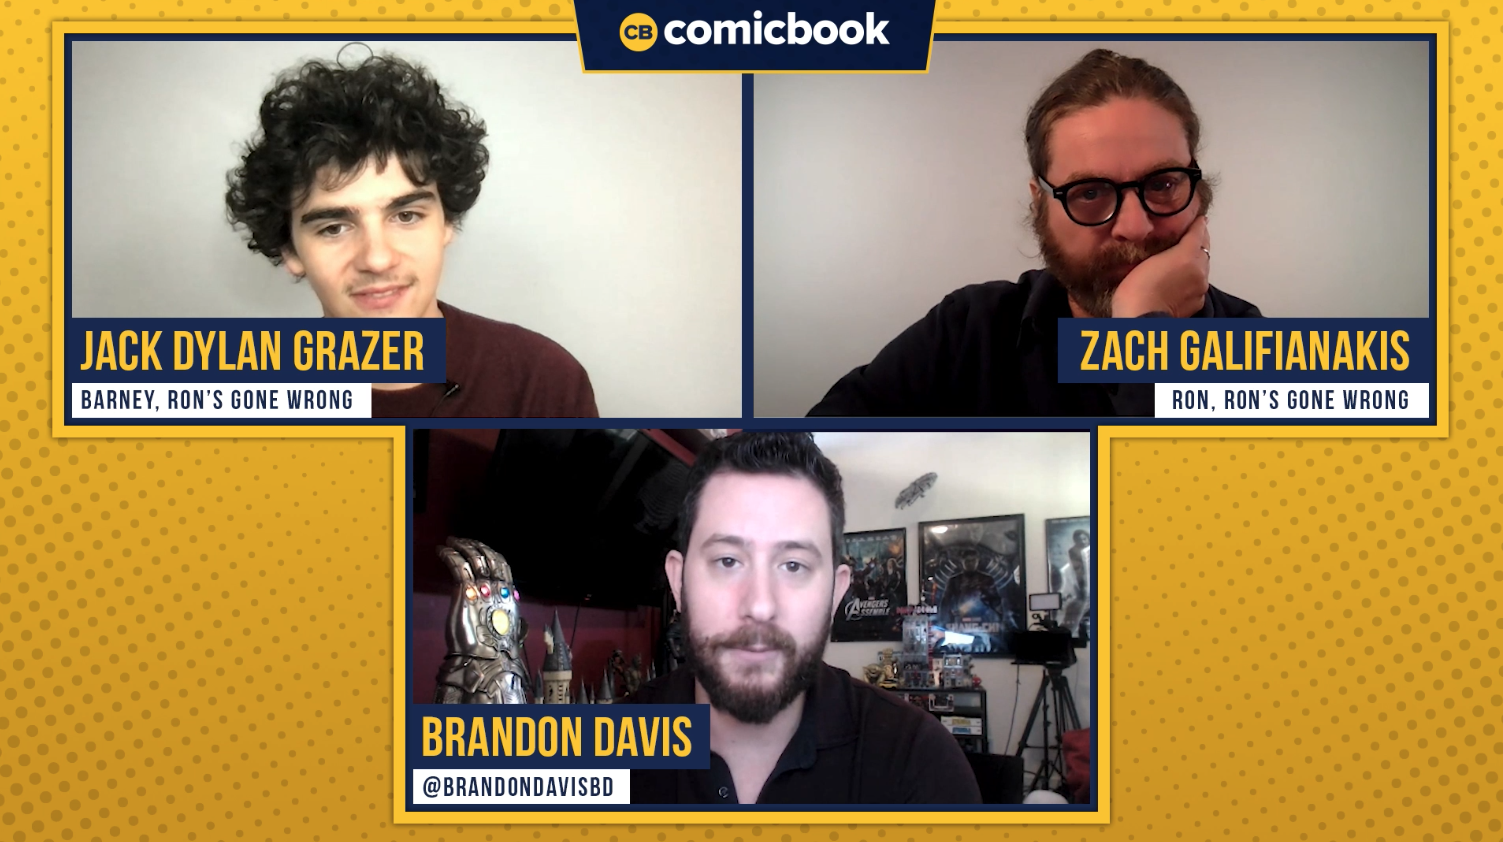 Jack Dylan Grazer and Zach Galifianakis Talk Ron's Gone Wrong